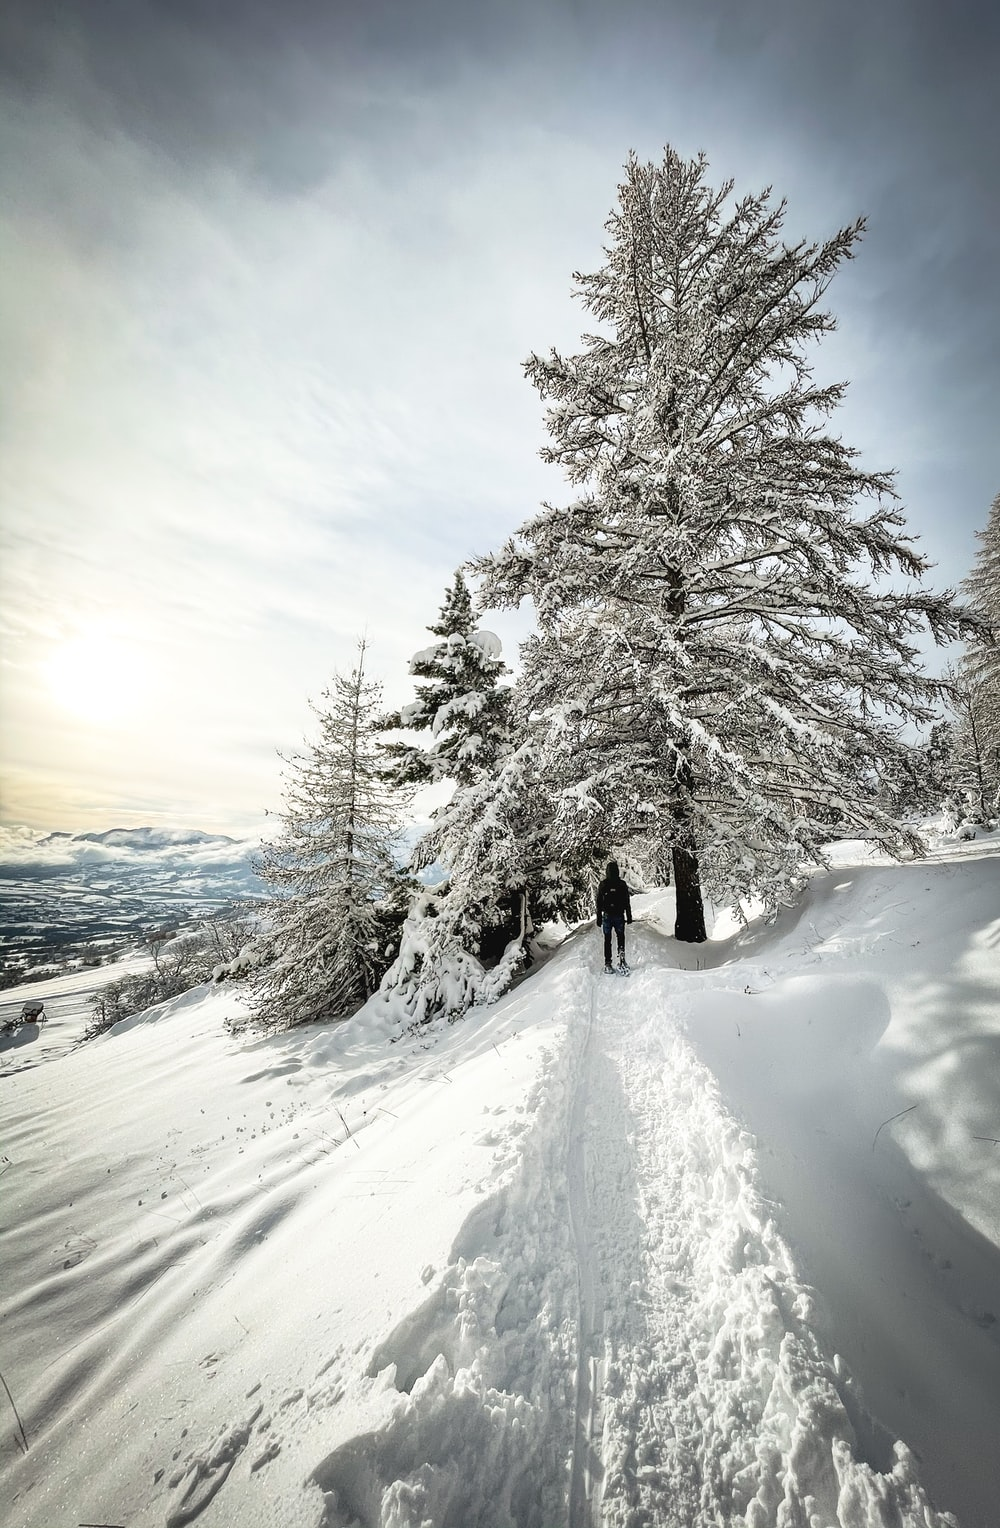 person walking on snow covered pathway between trees during daytime